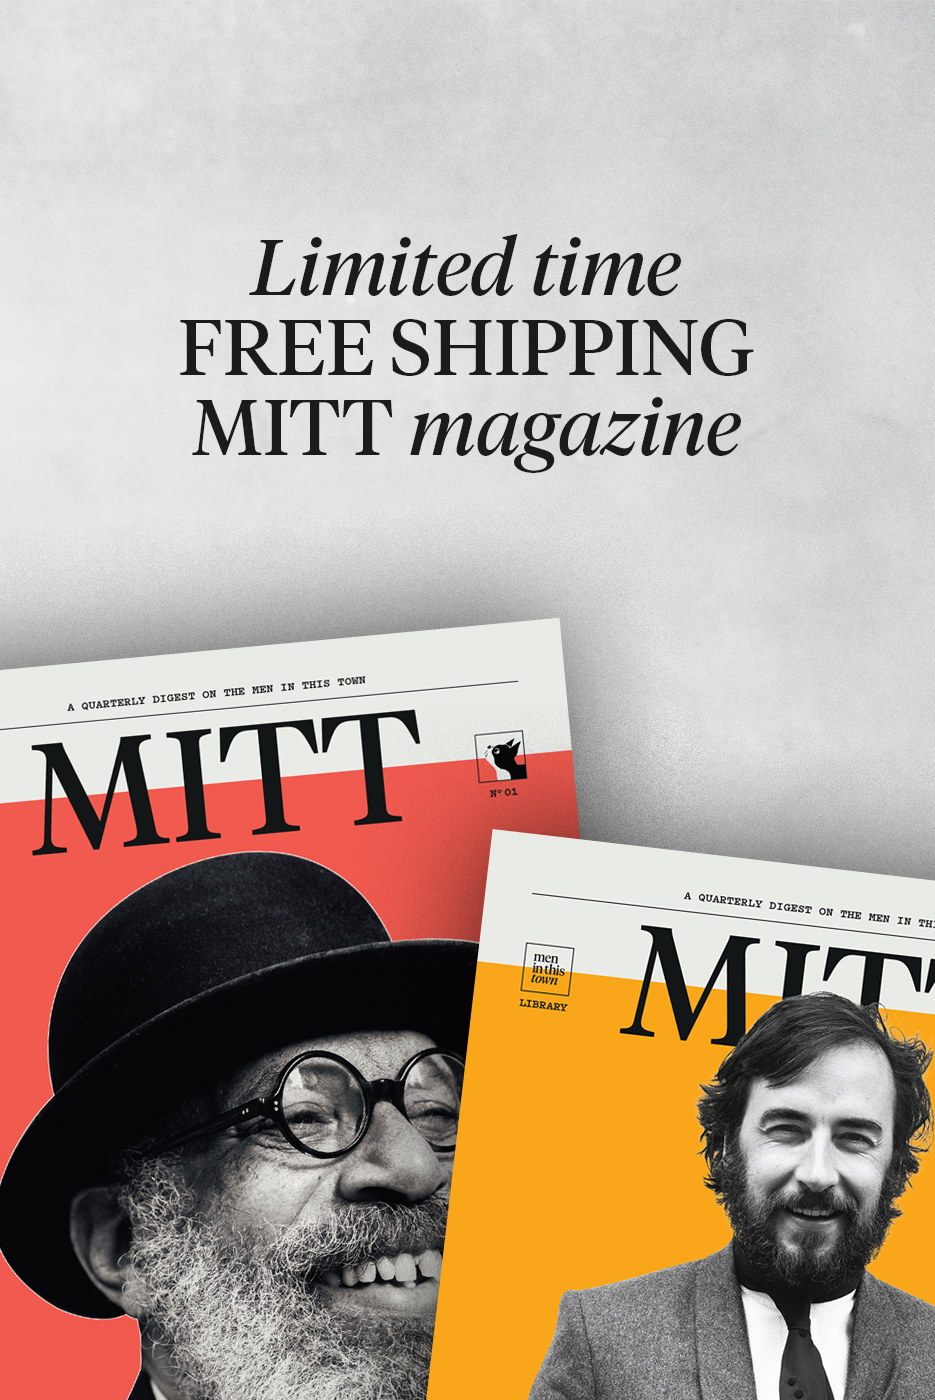 Hey everyone, for a  limited time ,   The MITT Mrkt   has   free worldwide shipping   on issues 1 and 2 of   MITT   magazine! Head on over and get yourself some summer or winter reads. ;)